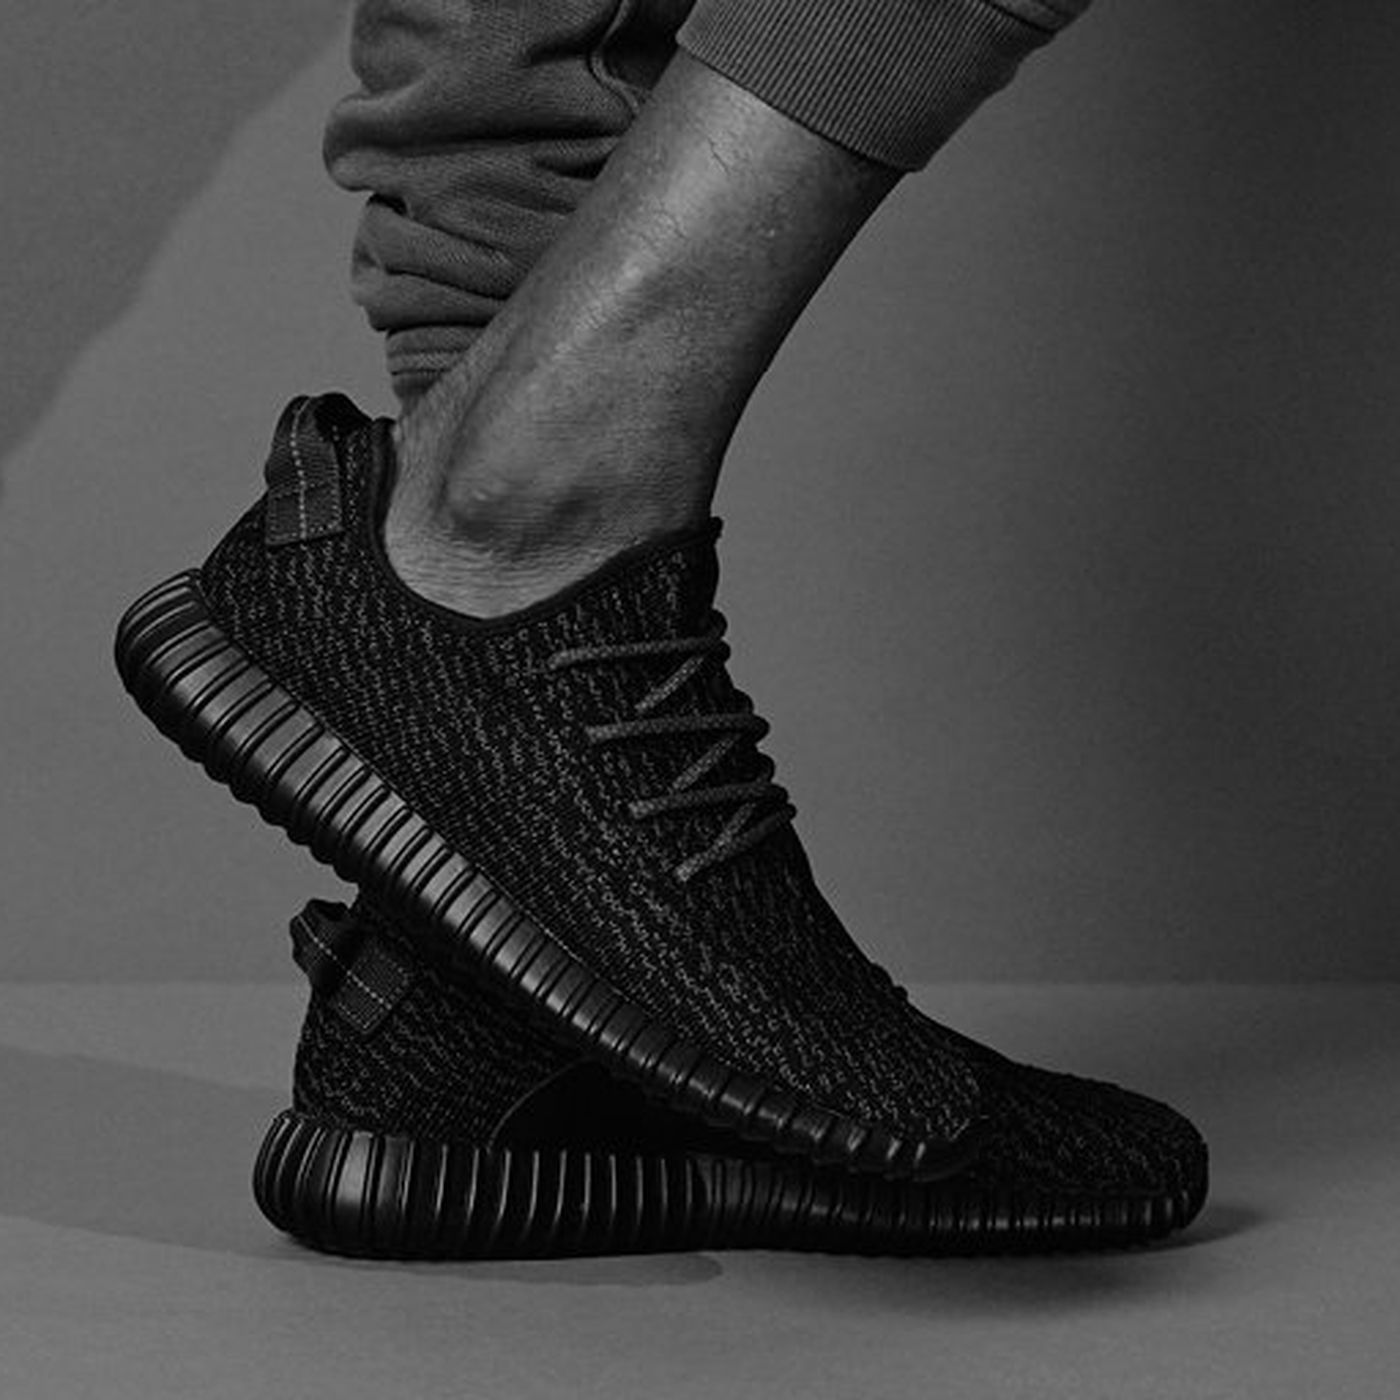 6808fd38fea Every Place to Buy Kanye's Black Yeezy Boosts - Racked